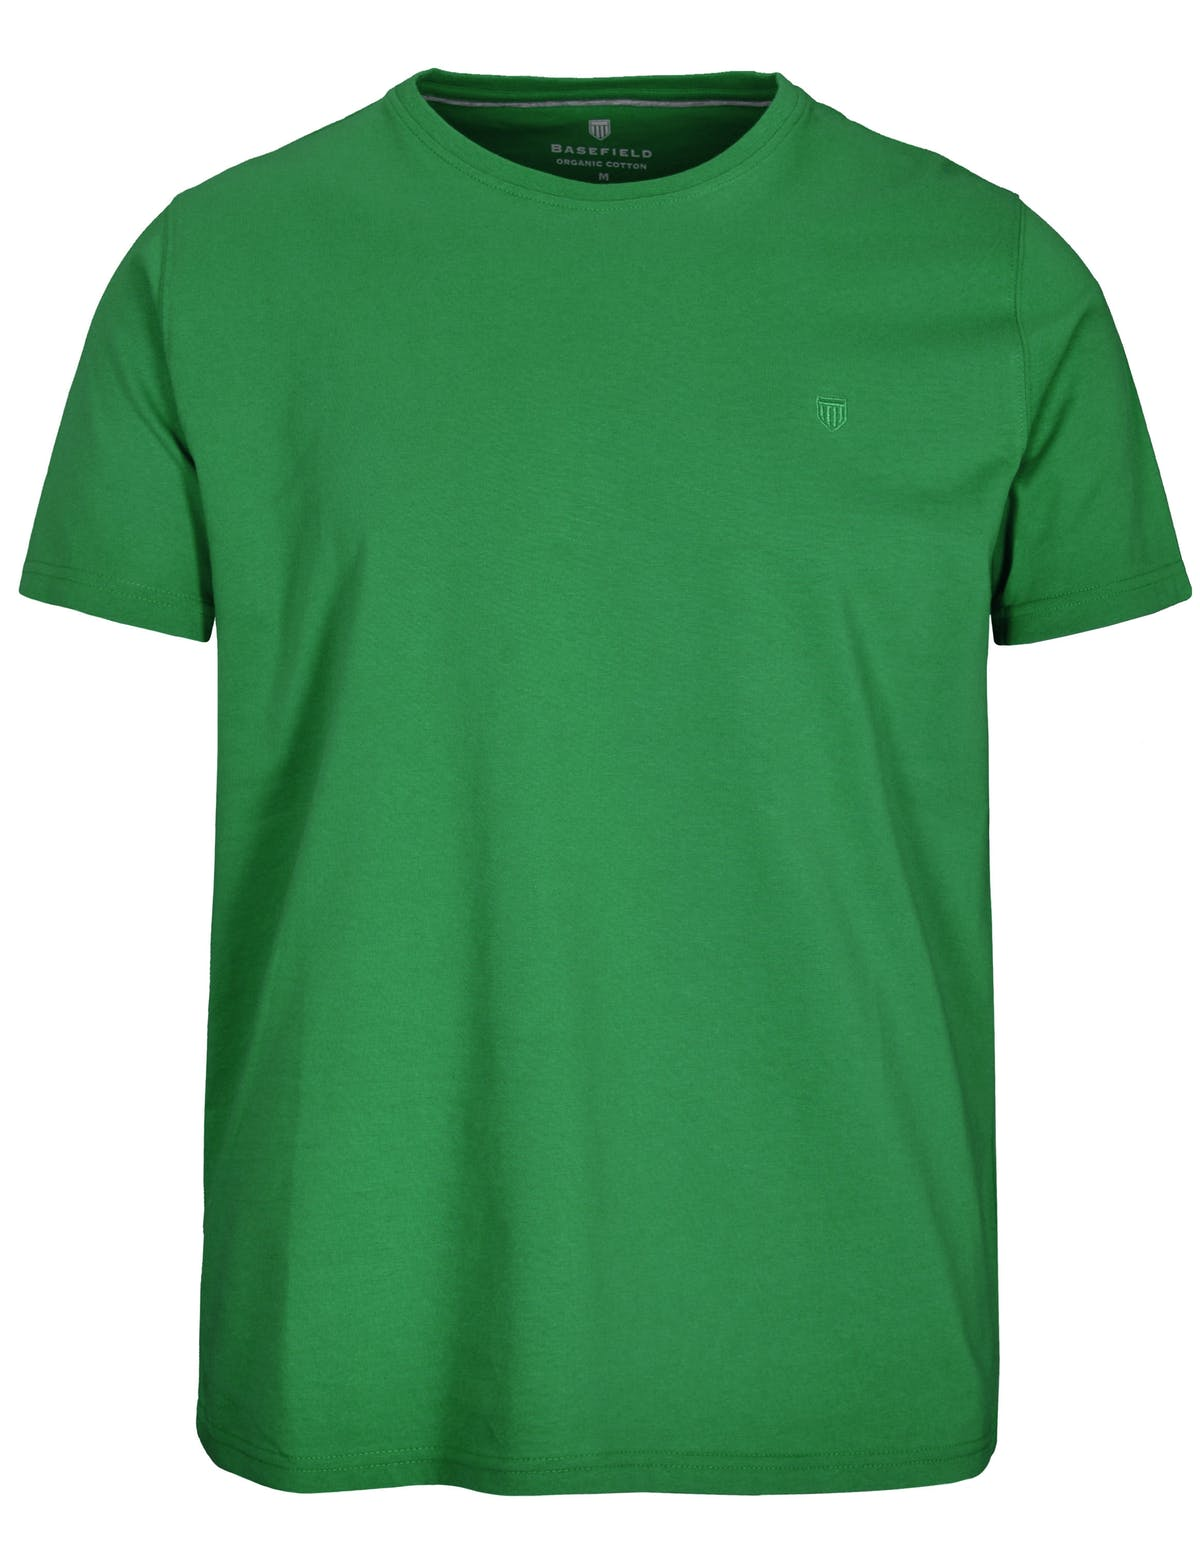 ORGANIC COTTON T-Shirt - Green